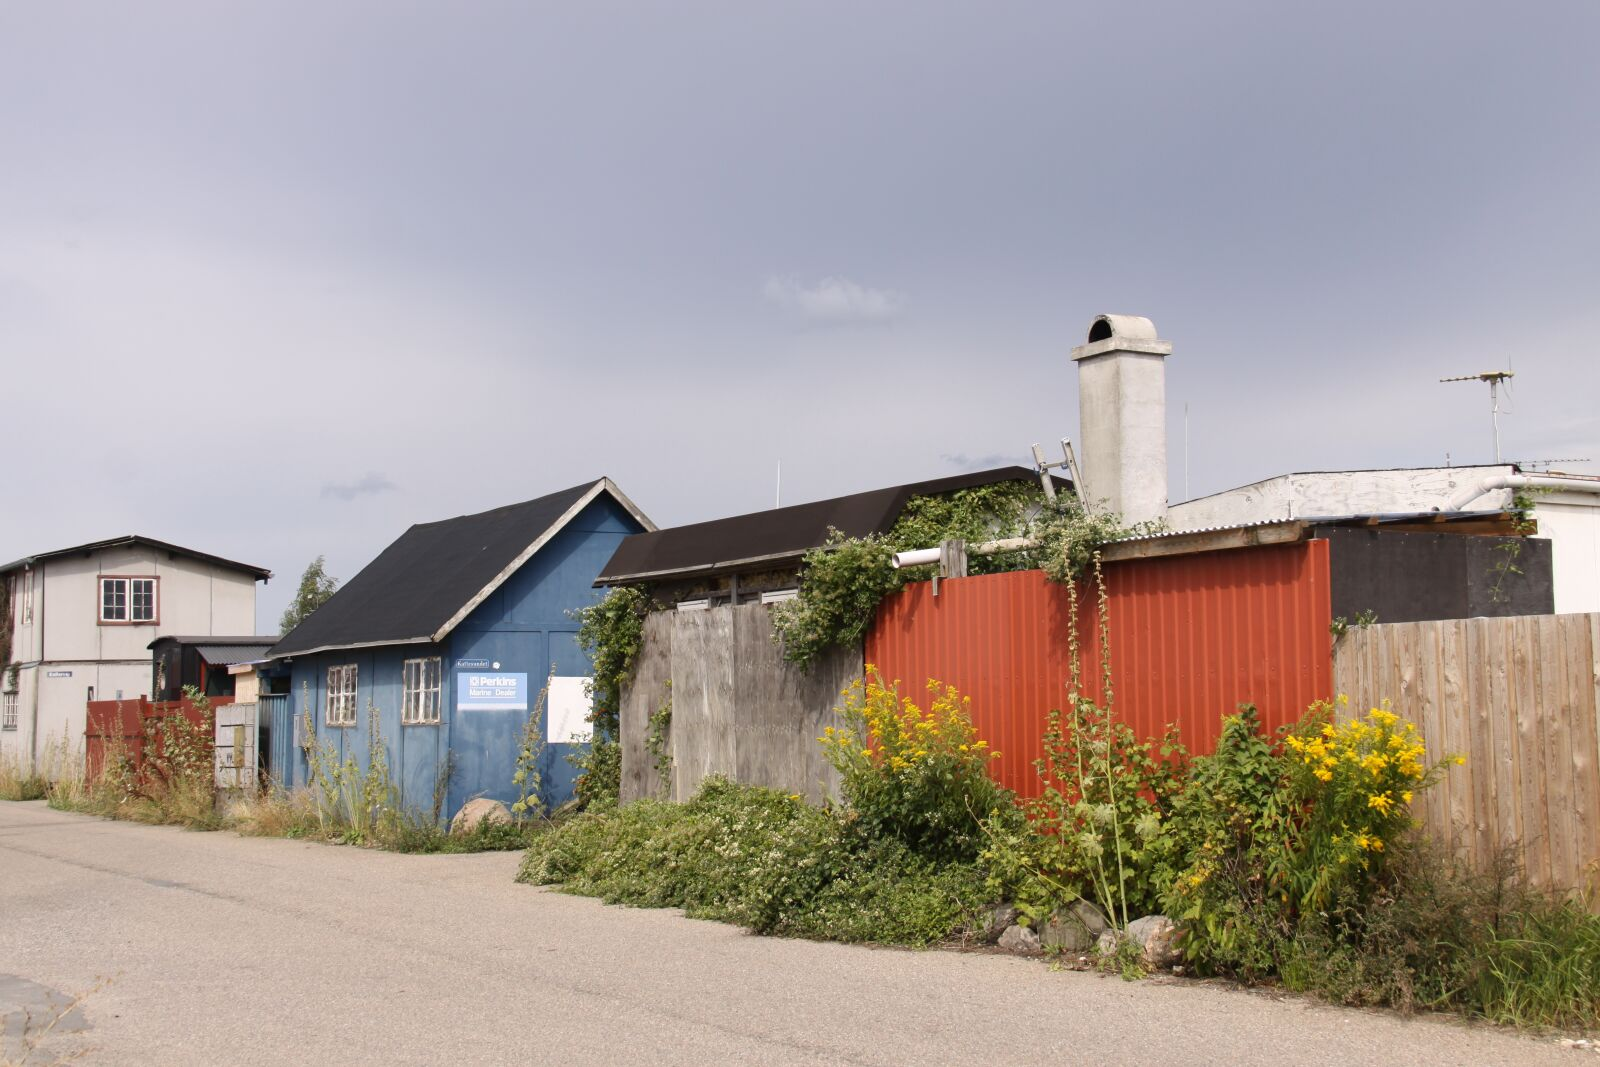 """Canon EOS 50D sample photo. """"Sheds, fishing port, road"""" photography"""